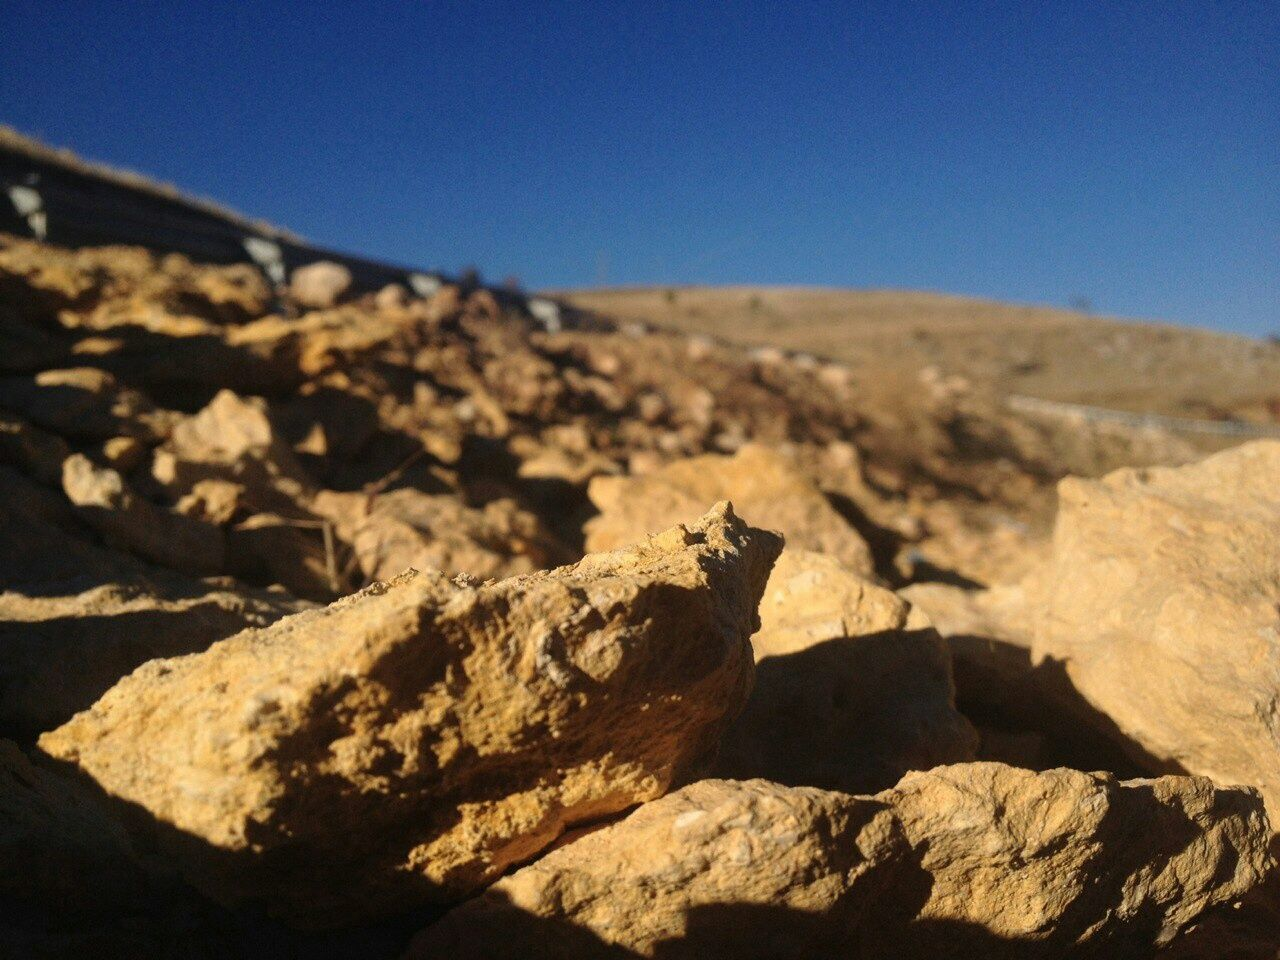 rock - object, sunlight, day, outdoors, no people, geology, clear sky, nature, tranquility, arid climate, blue, physical geography, landscape, shadow, sky, desert, close-up, beauty in nature